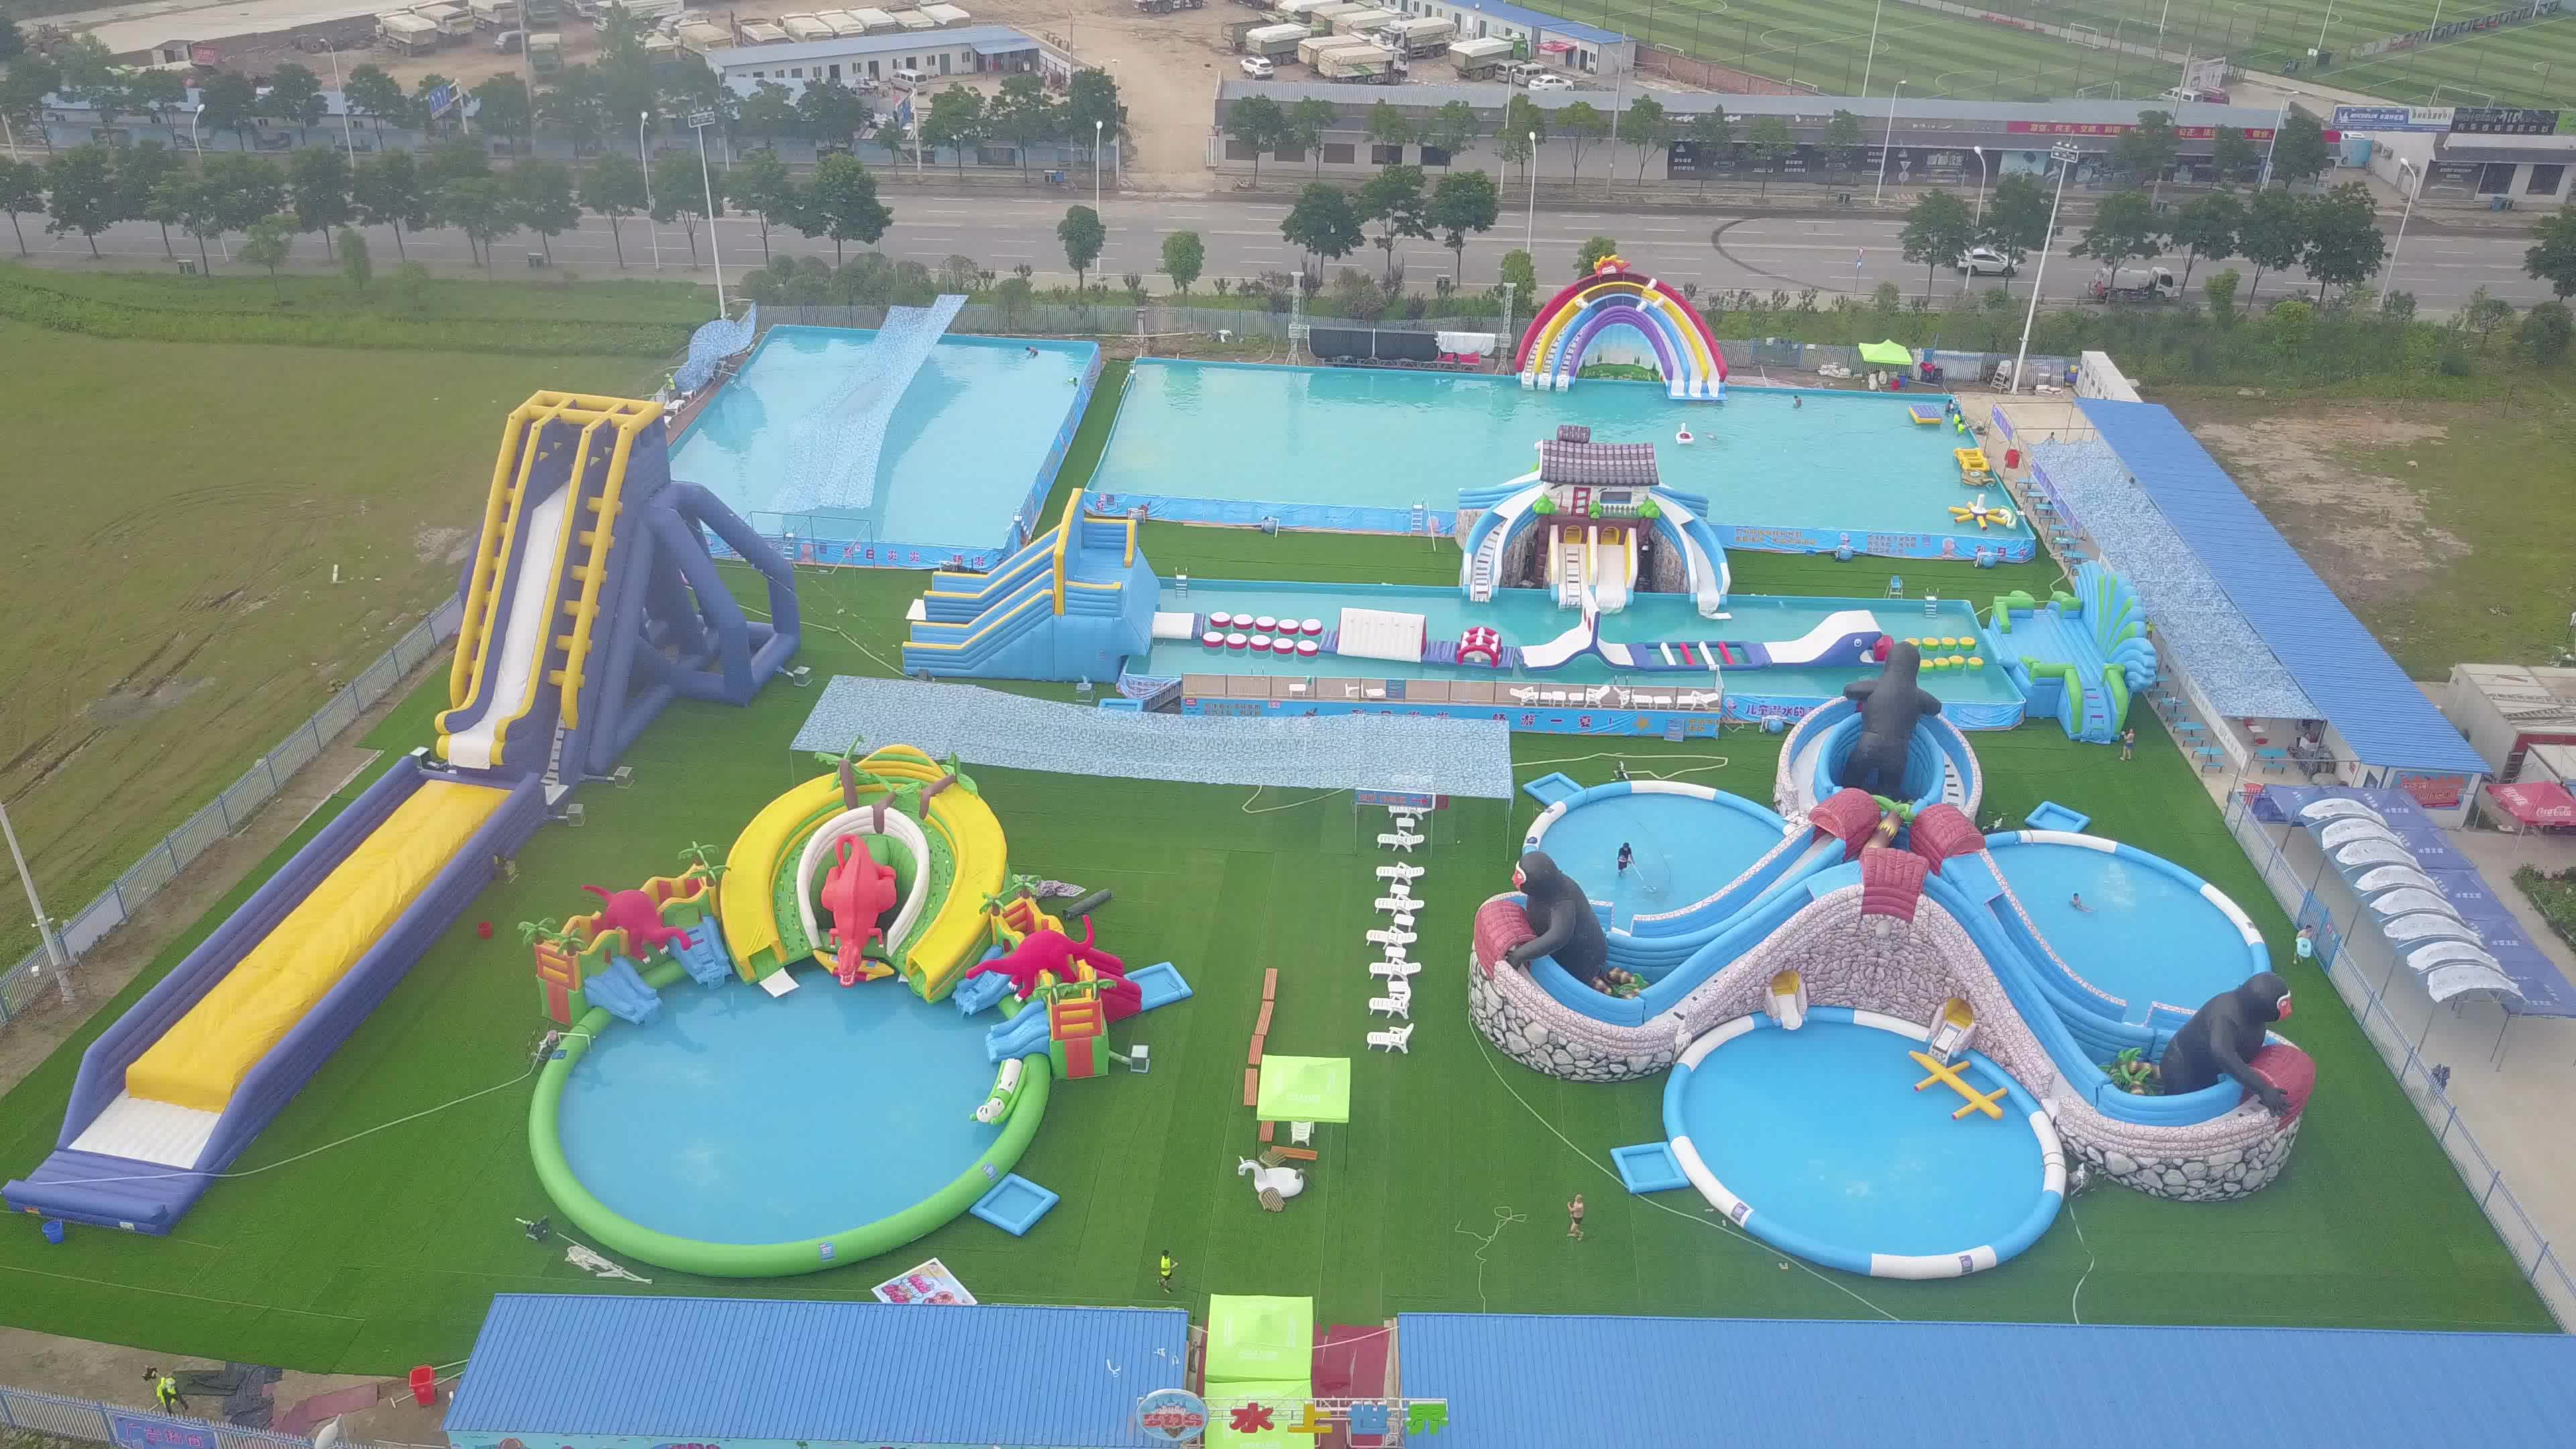 Summer Cheap Large Commercial Adult Entertainment Big Inflatable Playground Amusement Aqua Fun Water Park Kids With Pool